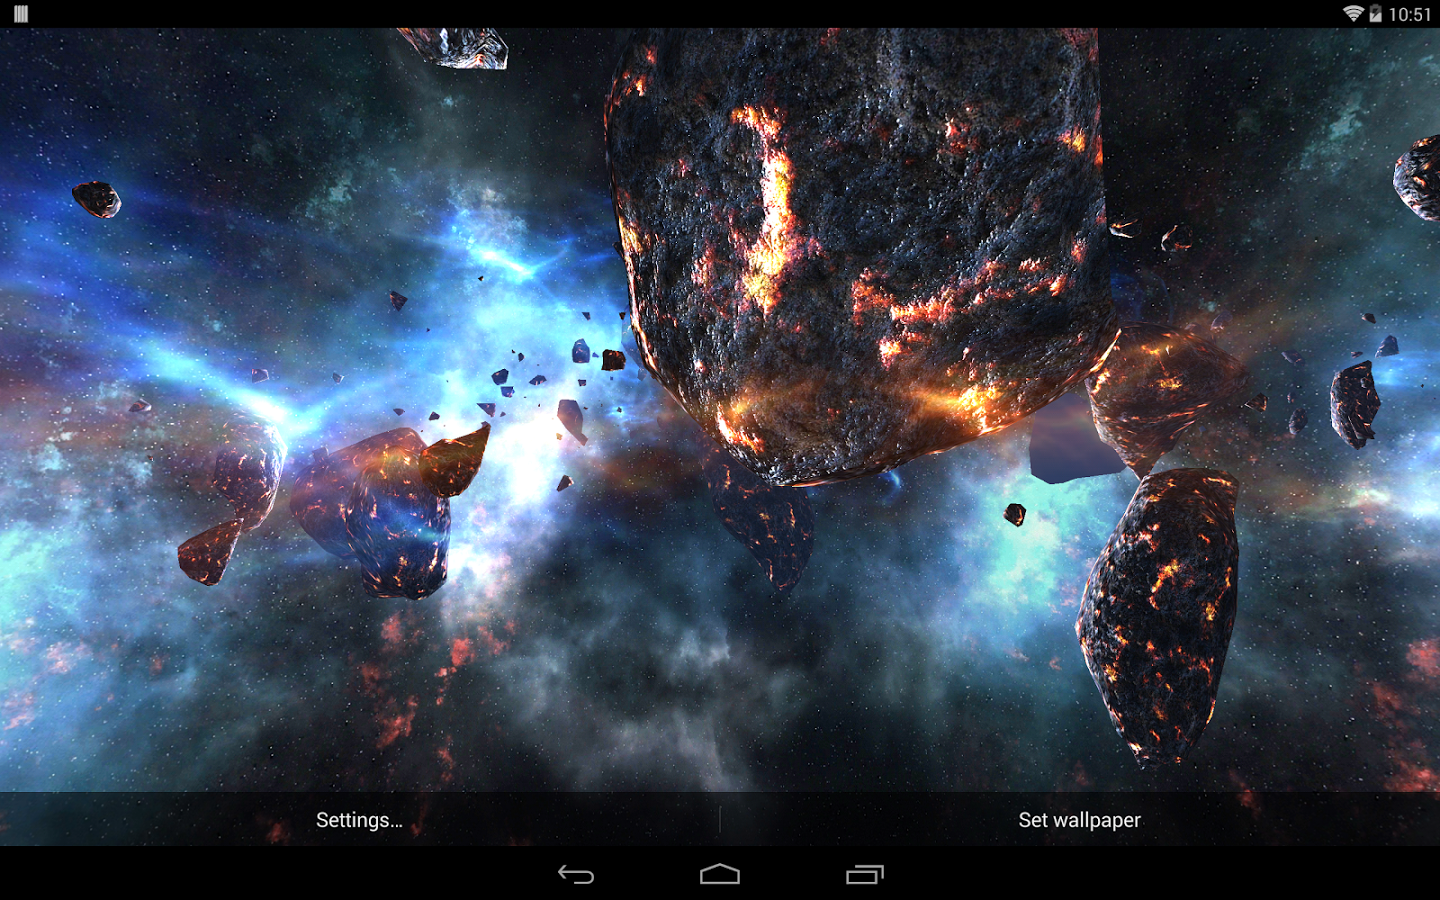 10 great new Android live wallpapers 1440x900